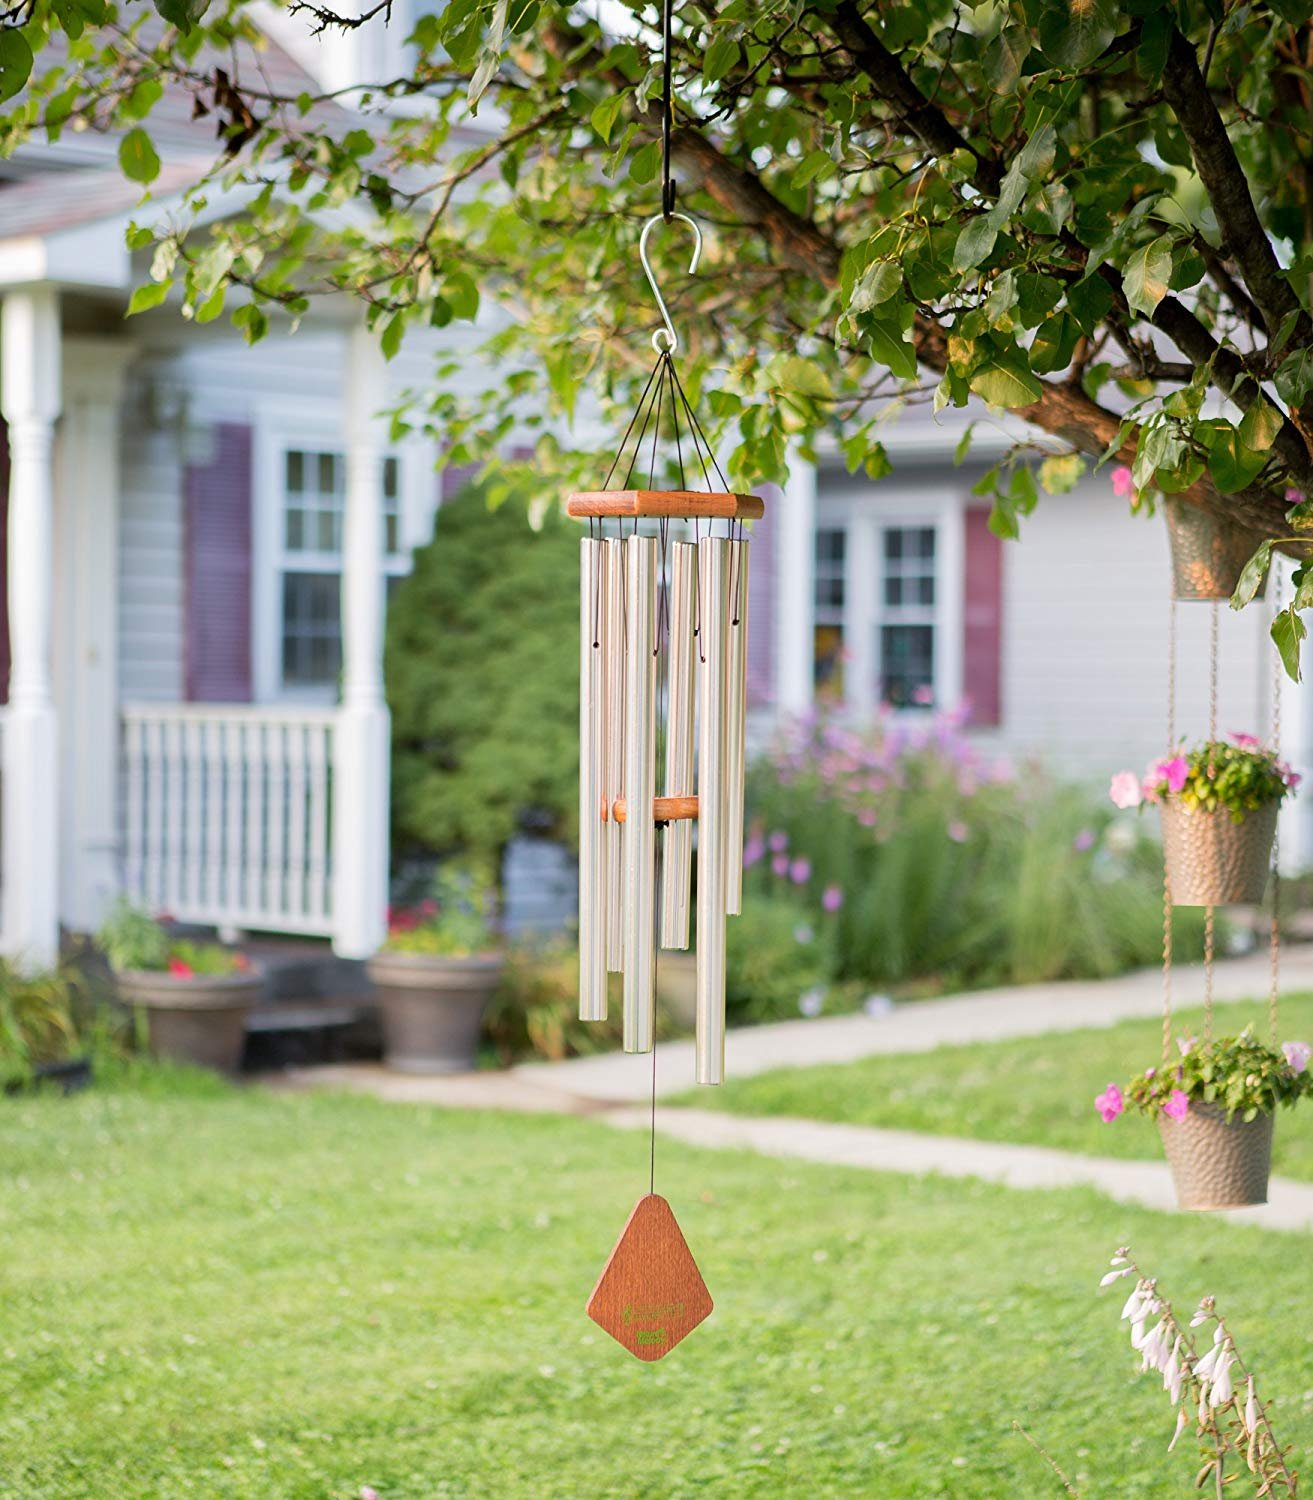 "Wind Chimes Outdoor, 25"" Amazing Grace Wind Chimes with 6 Aluminum Tubes Musical Melody Wind Bell for Garden, Patio, Balcony, Indoor Decor with Beautiful Sound (Silver) Erlvery DaMain"